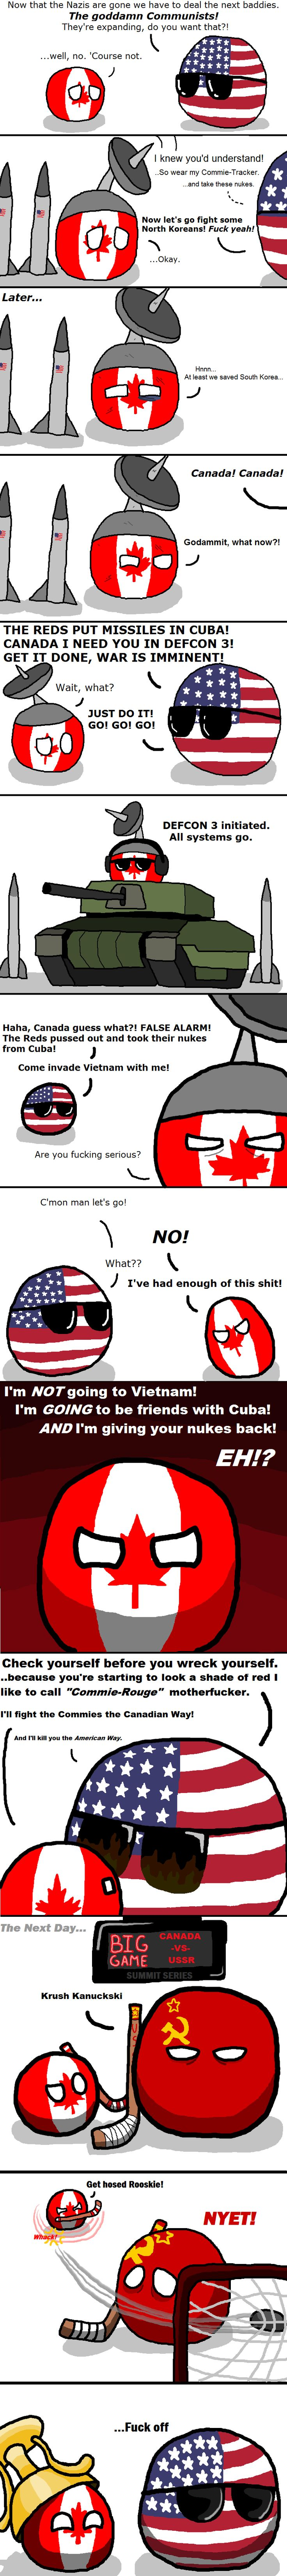 Canada's Way ( Canada, USA, Soviet ) by Pan Aaron #polandball #countryball